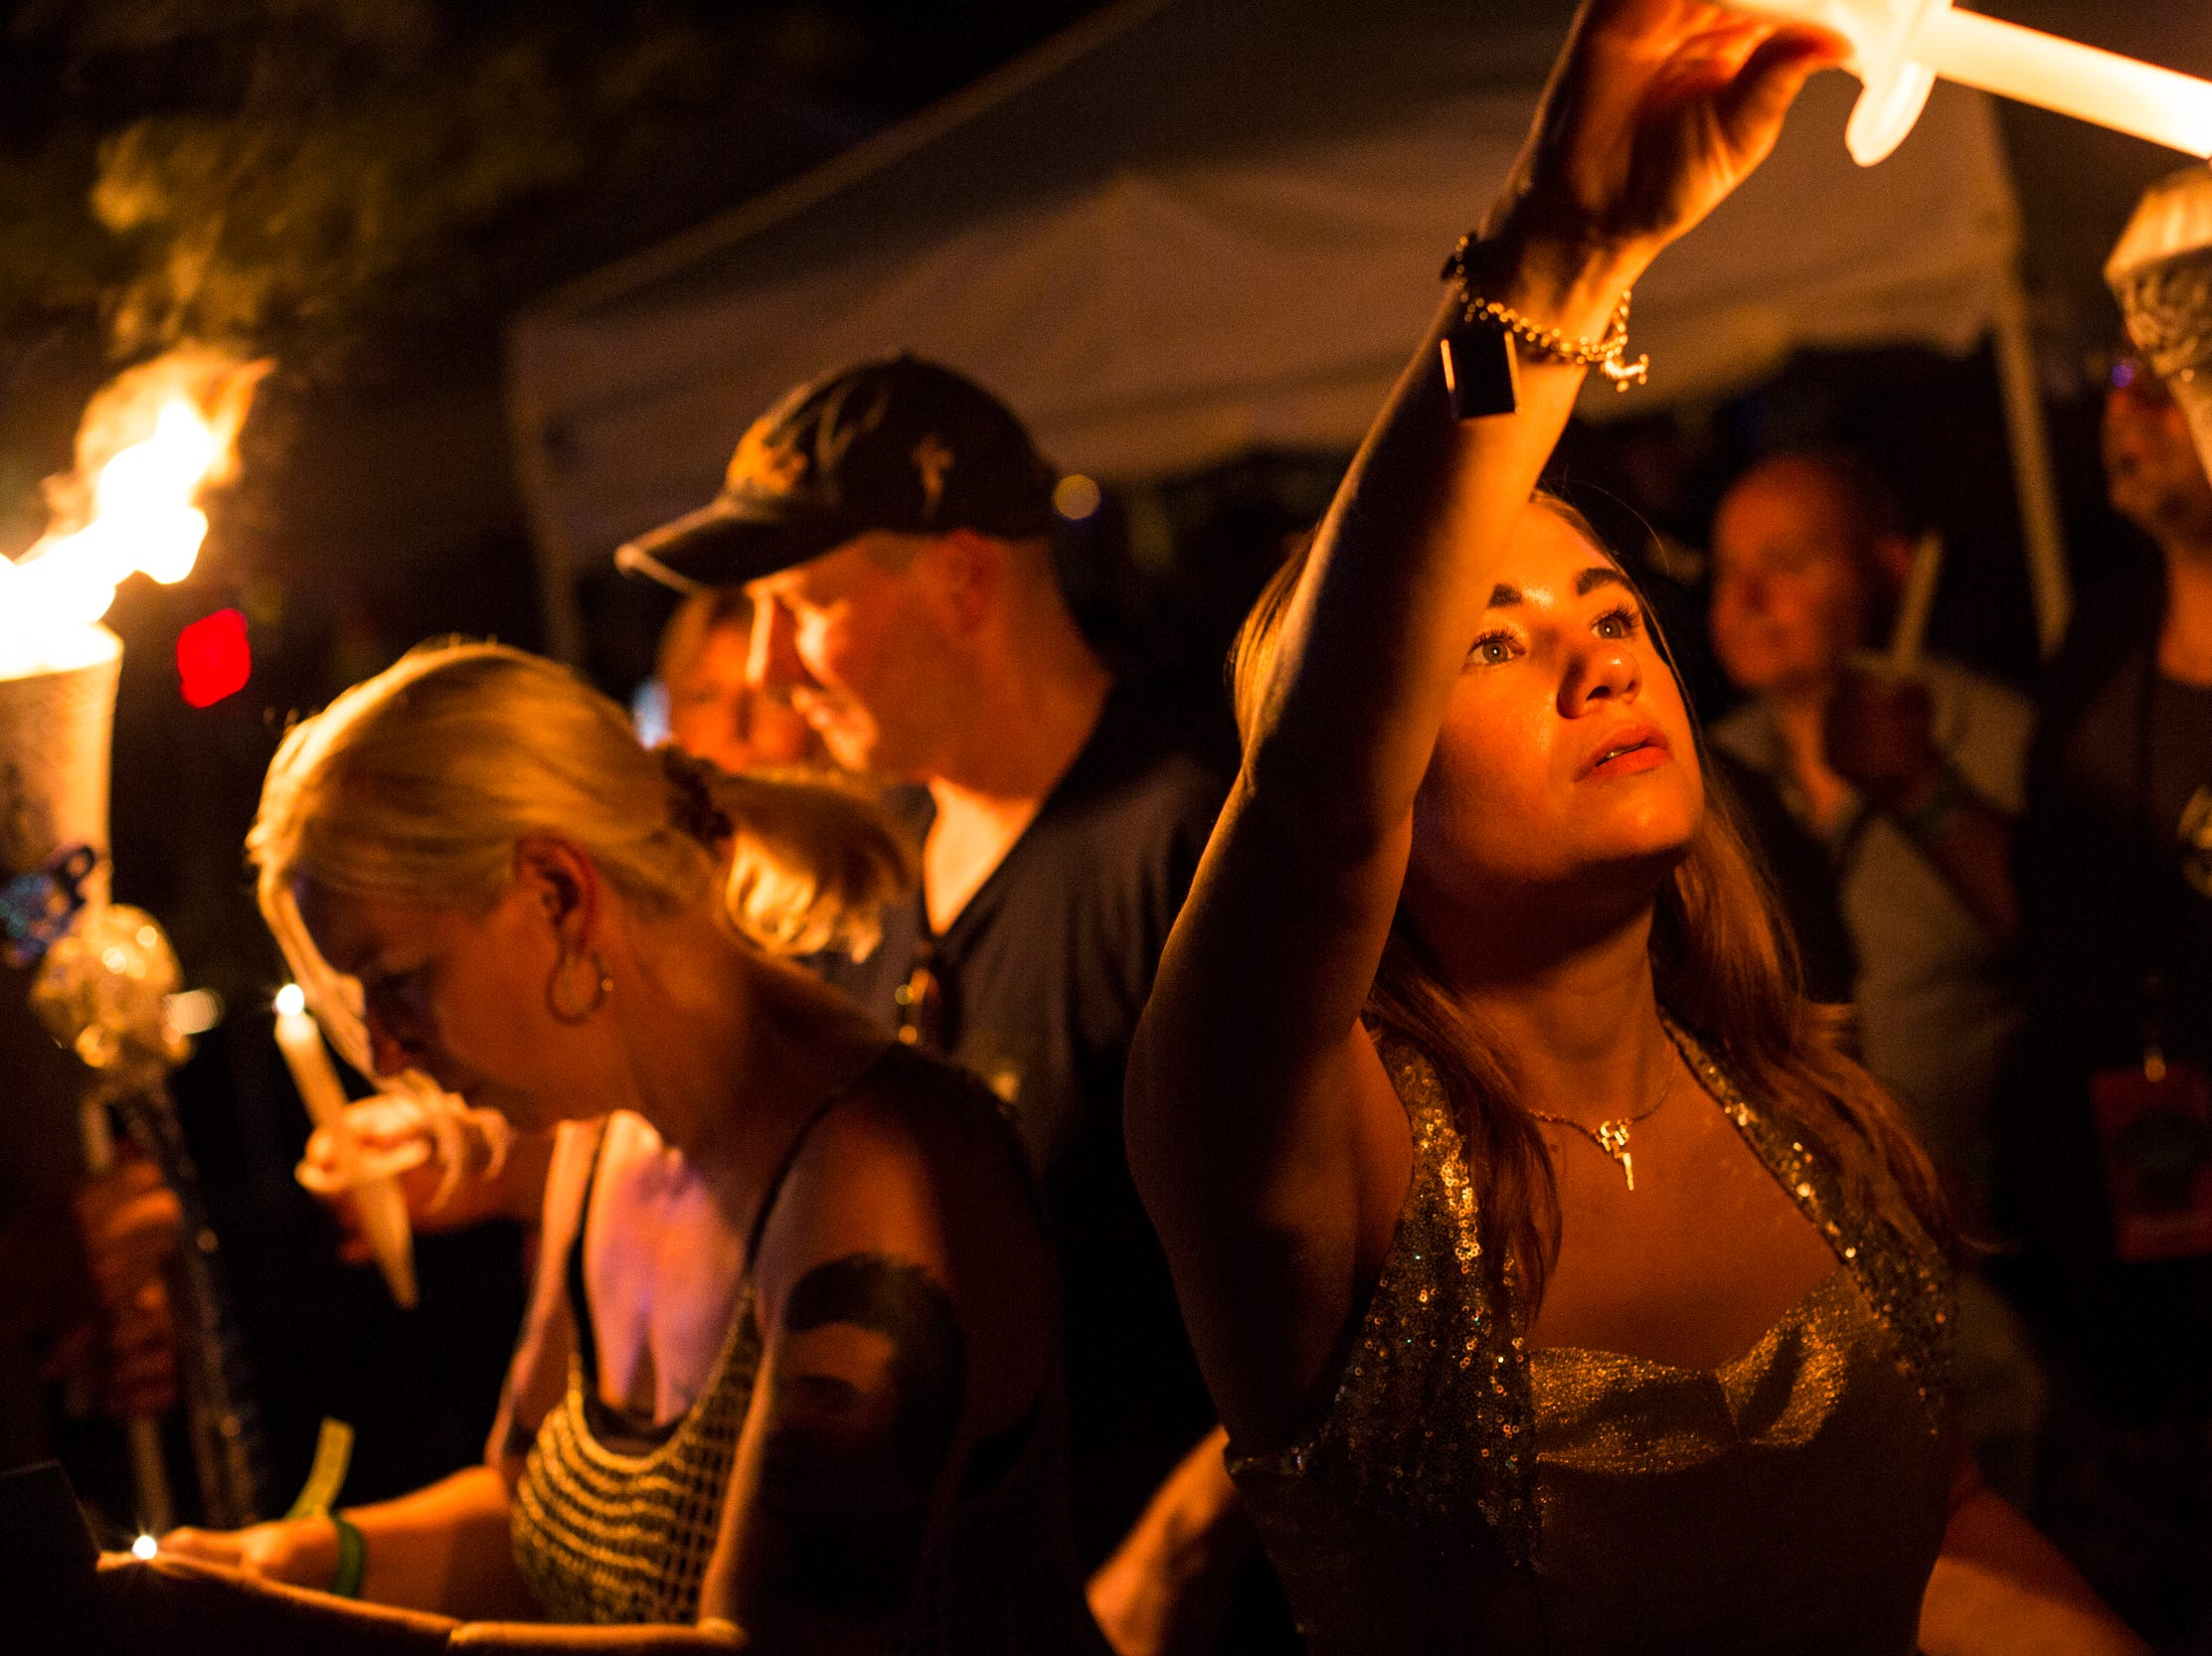 """August 14, 2018 - Elvis Presley fans light their candles before walking to PresleyÕs gravesite during the nighttime vigil. The event took place during """"Elvis Week"""" that marks the 41st anniversary of Presley's Aug. 16 death."""